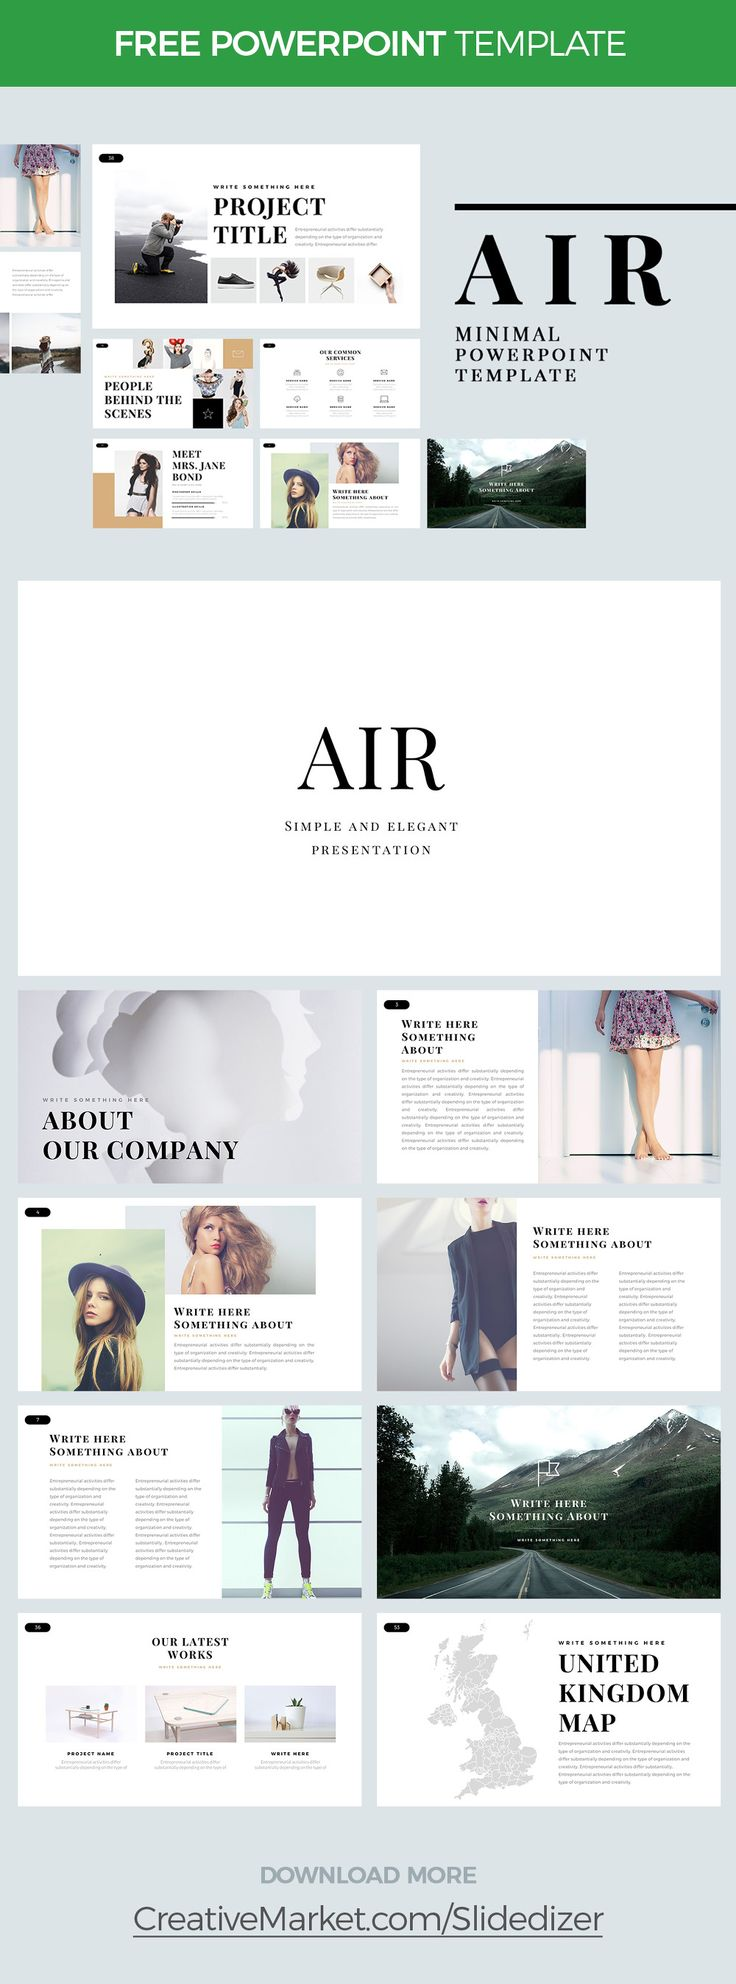 Best 25 power point templates ideas on pinterest presentation ppt free minimal powerpoint template toneelgroepblik Gallery